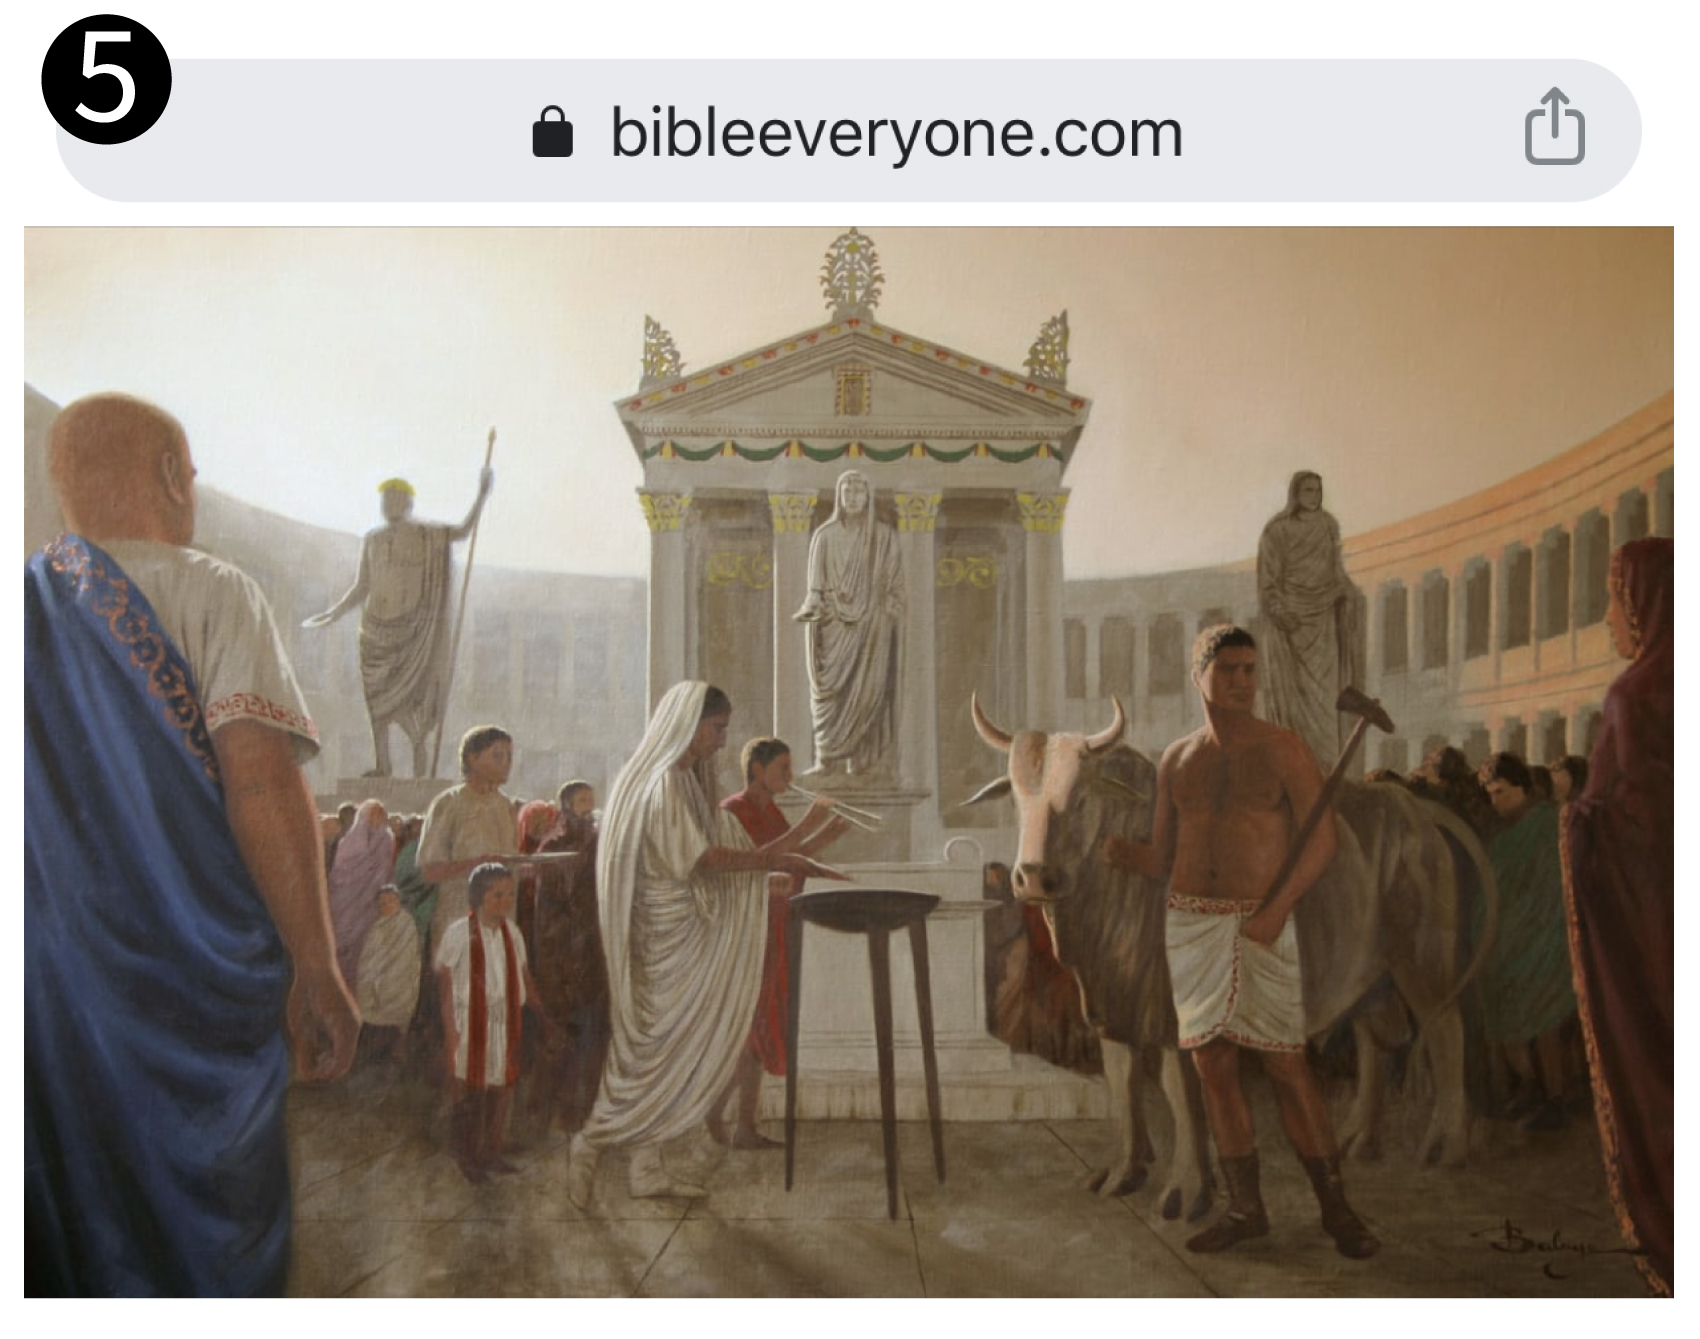 聖經共享 Bible for Everyone